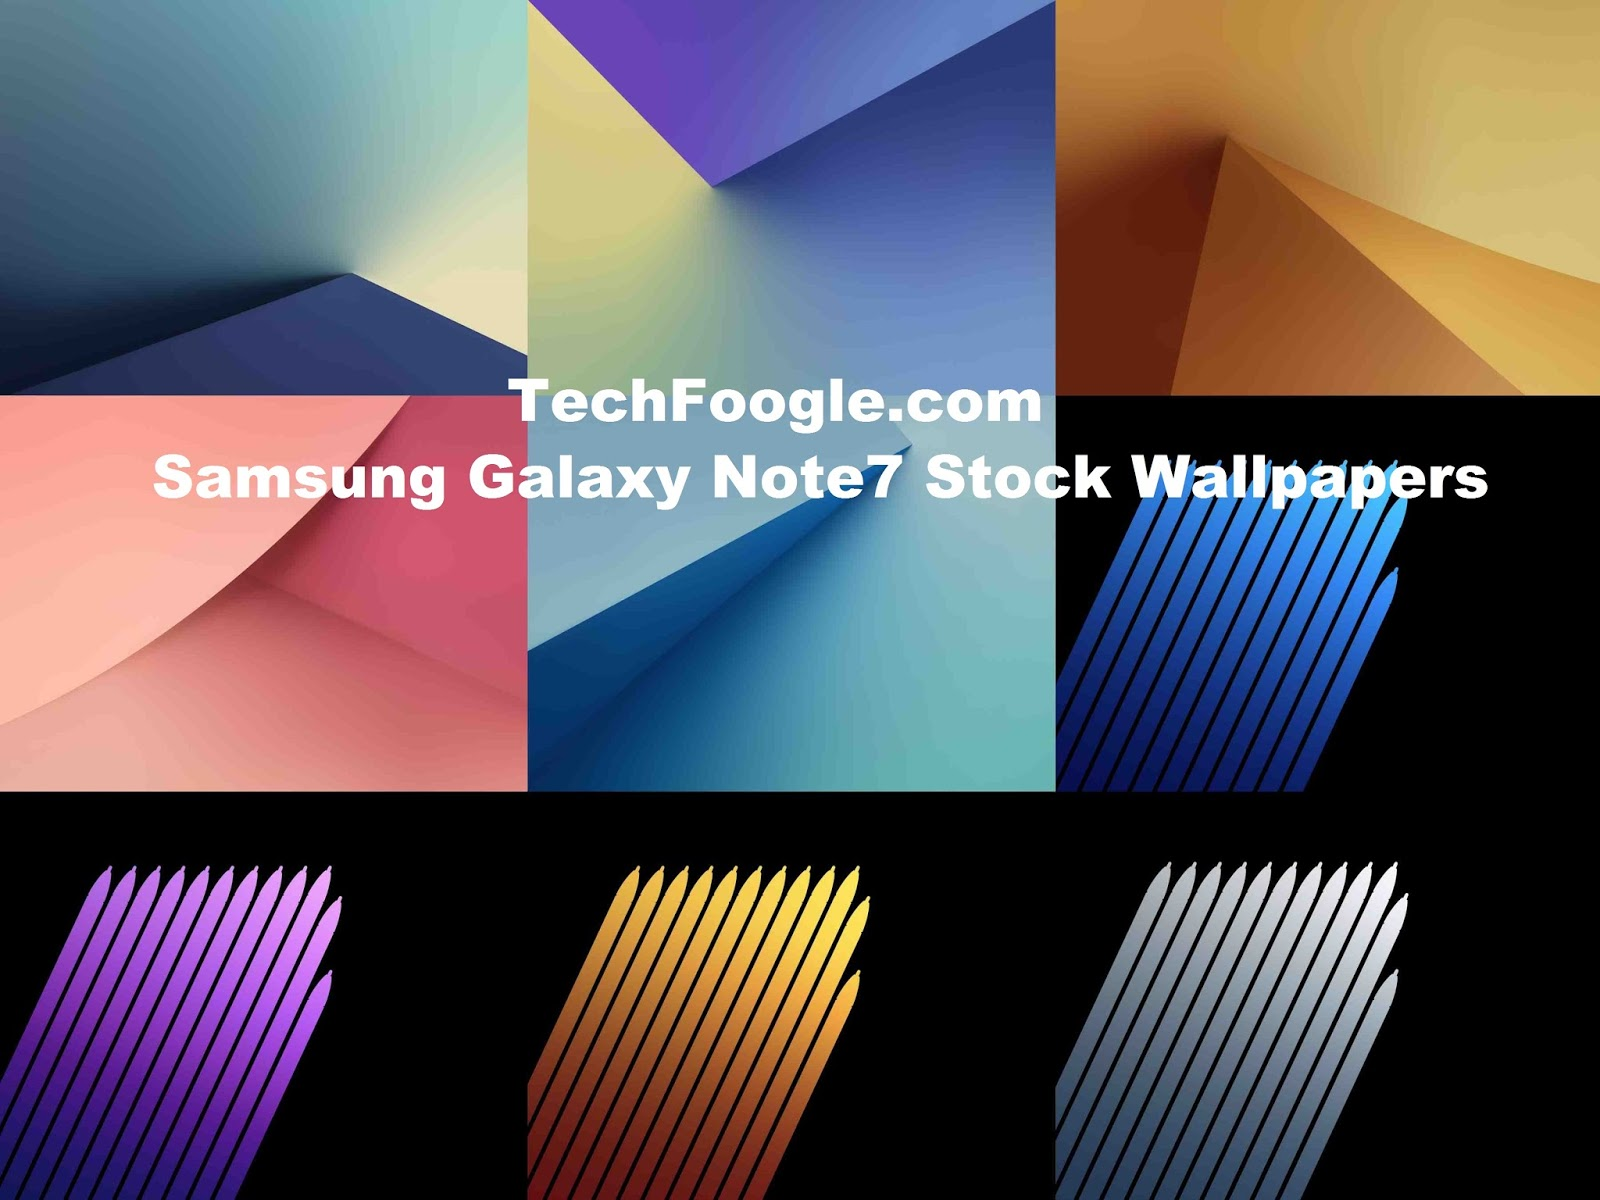 Download Samsung Galaxy S6 Wallpaper Leaked: Samsung Galaxy Note7 Leaked Stock Wallpapers: Download Now